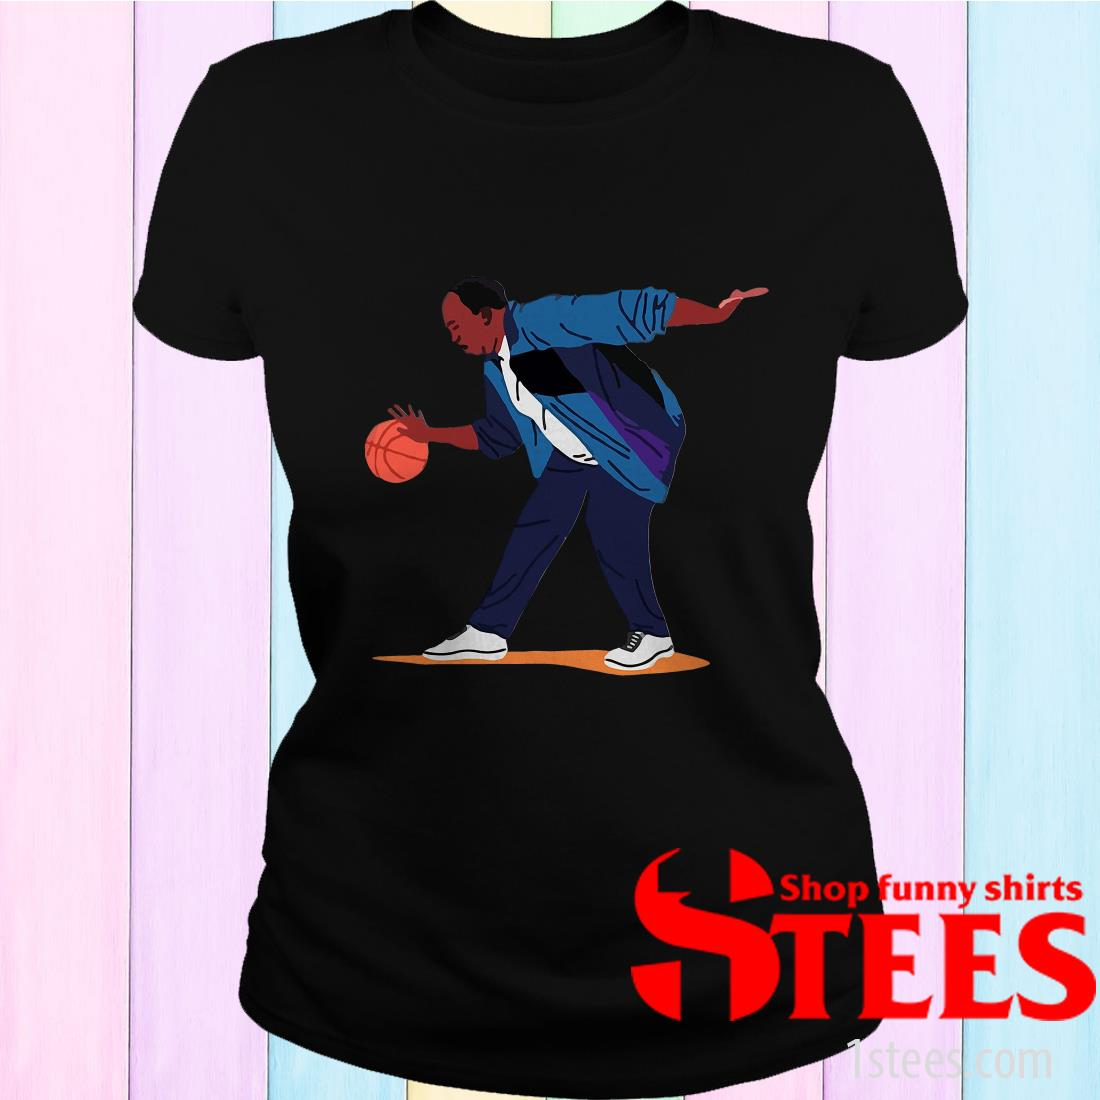 Stanley From The Office Basketball Playing T-Shirt